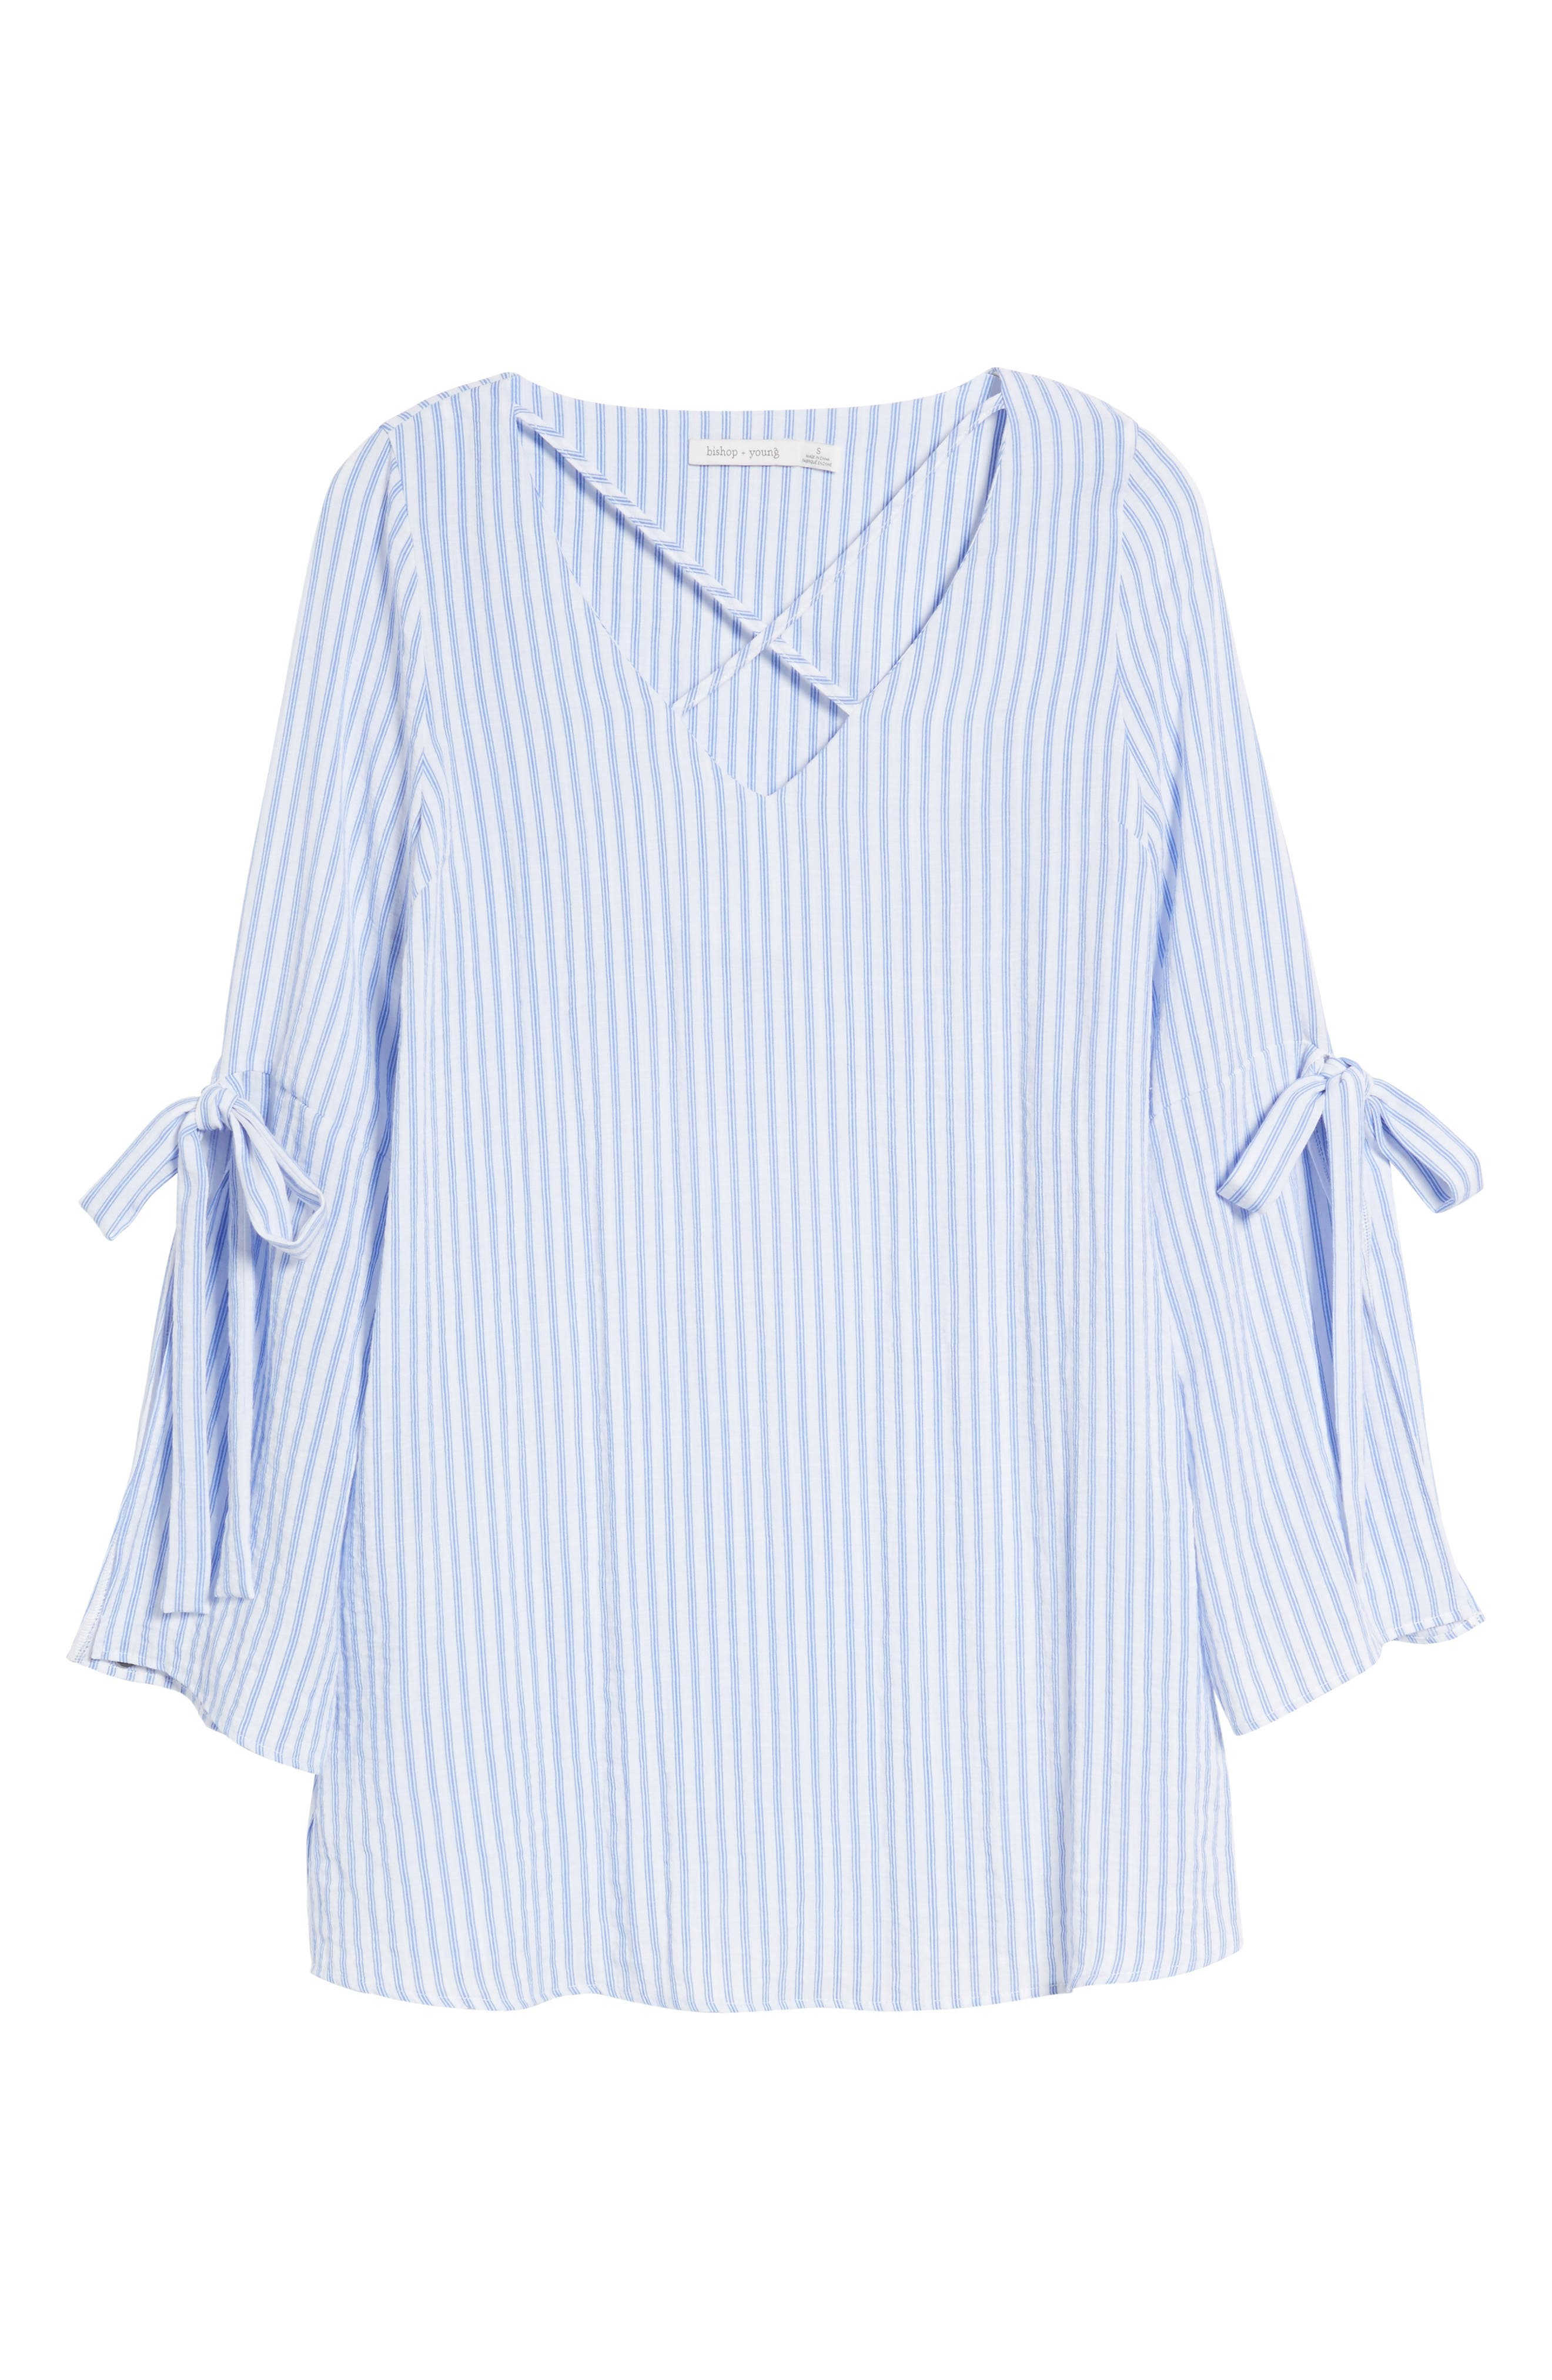 Bishop + Young Stripe Tunic Top,                             Alternate thumbnail 7, color,                             400